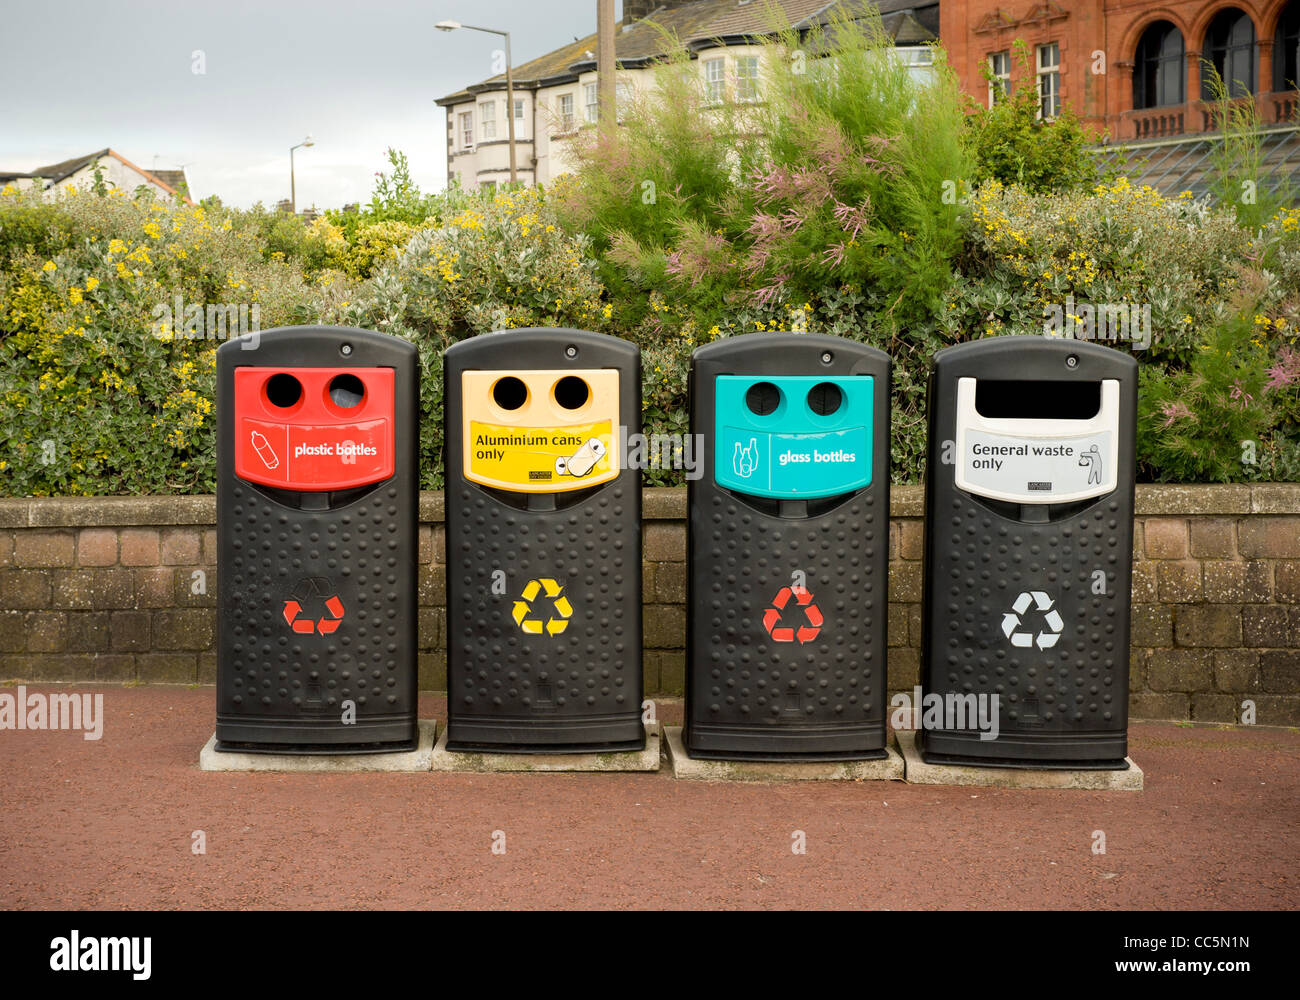 Recycling and general waste bins - Stock Image